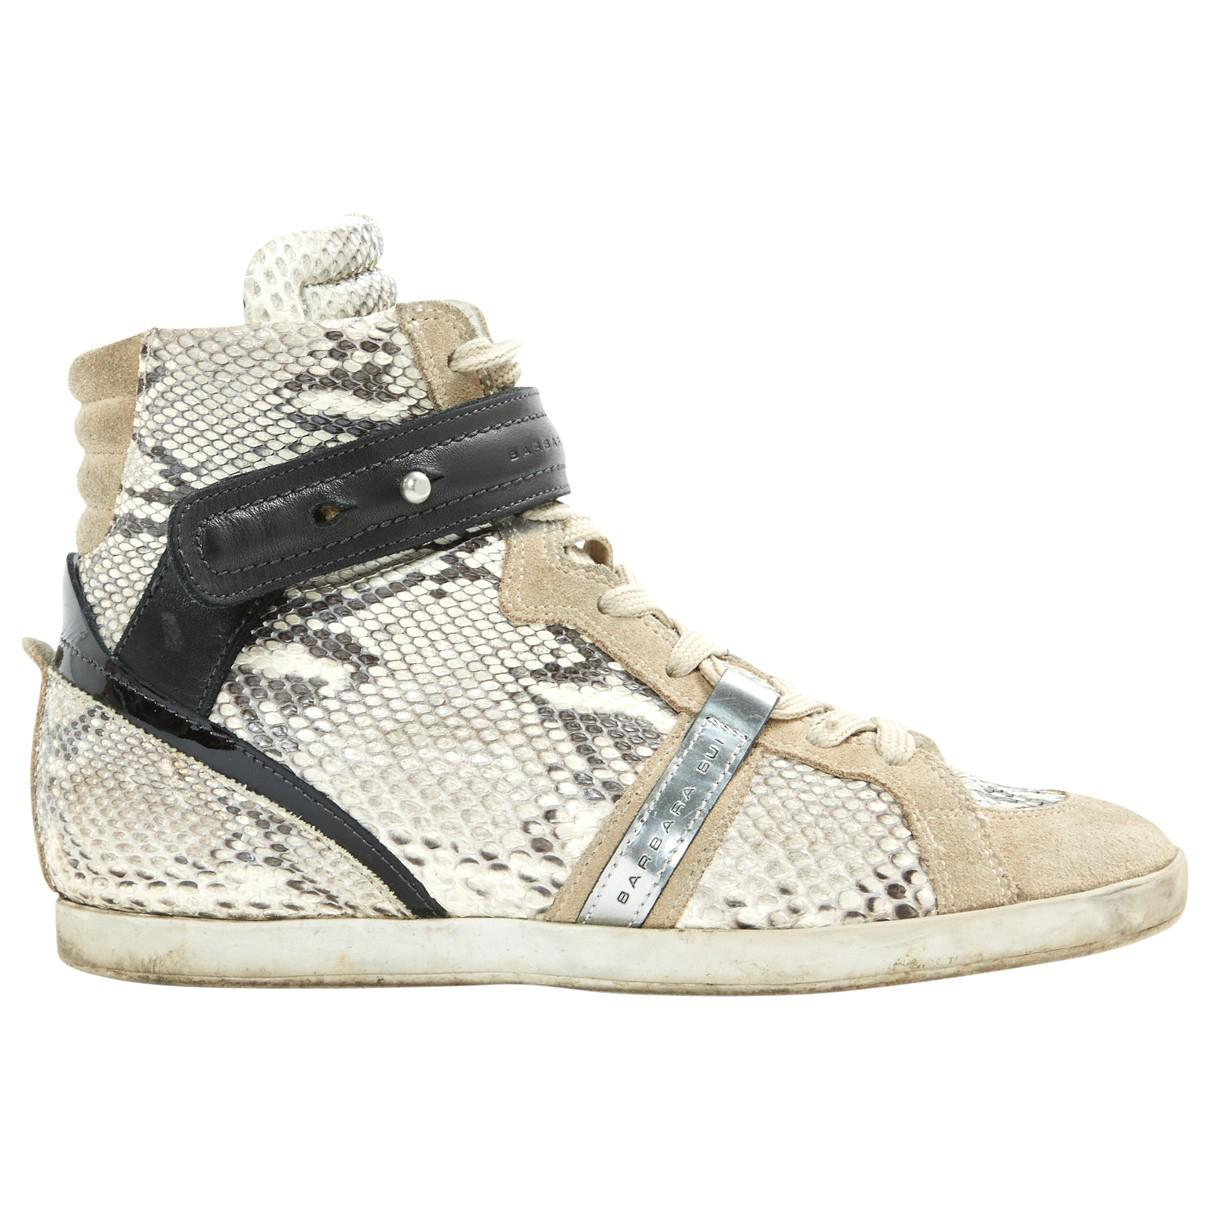 Pre-owned - Leather trainers Barbara Bui 83To64qh